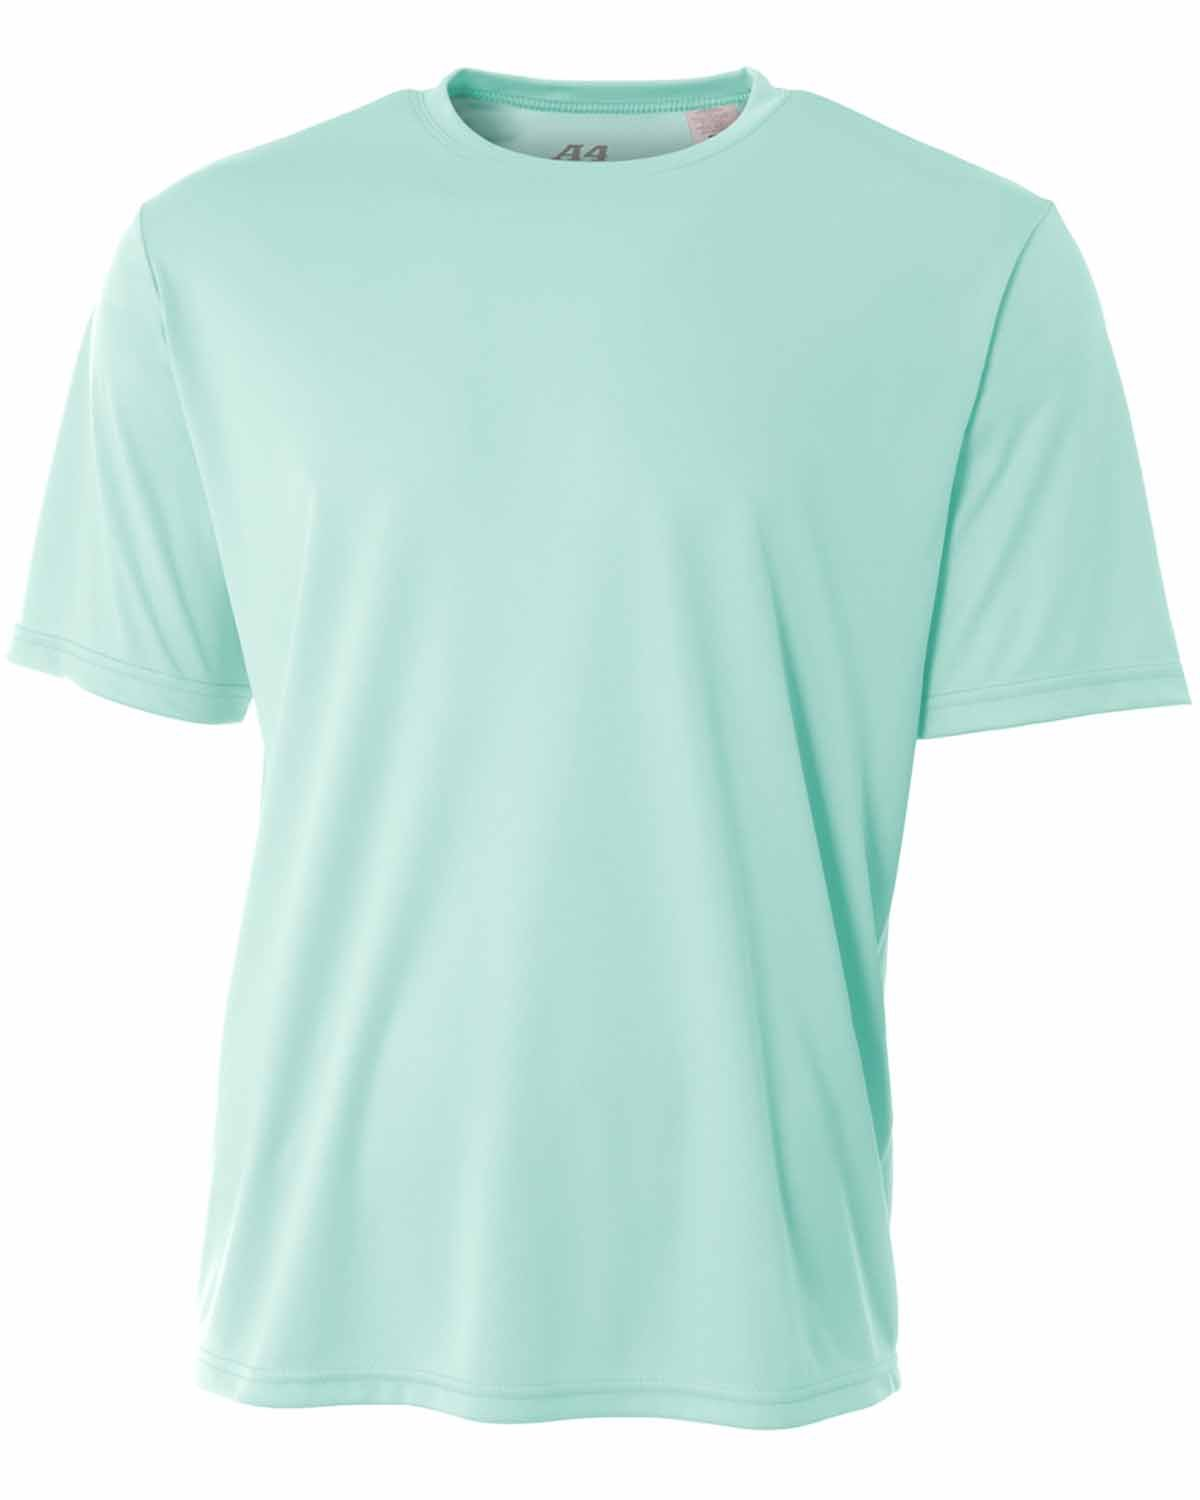 A4 Youth Cooling Performance T-Shirt PASTEL MINT